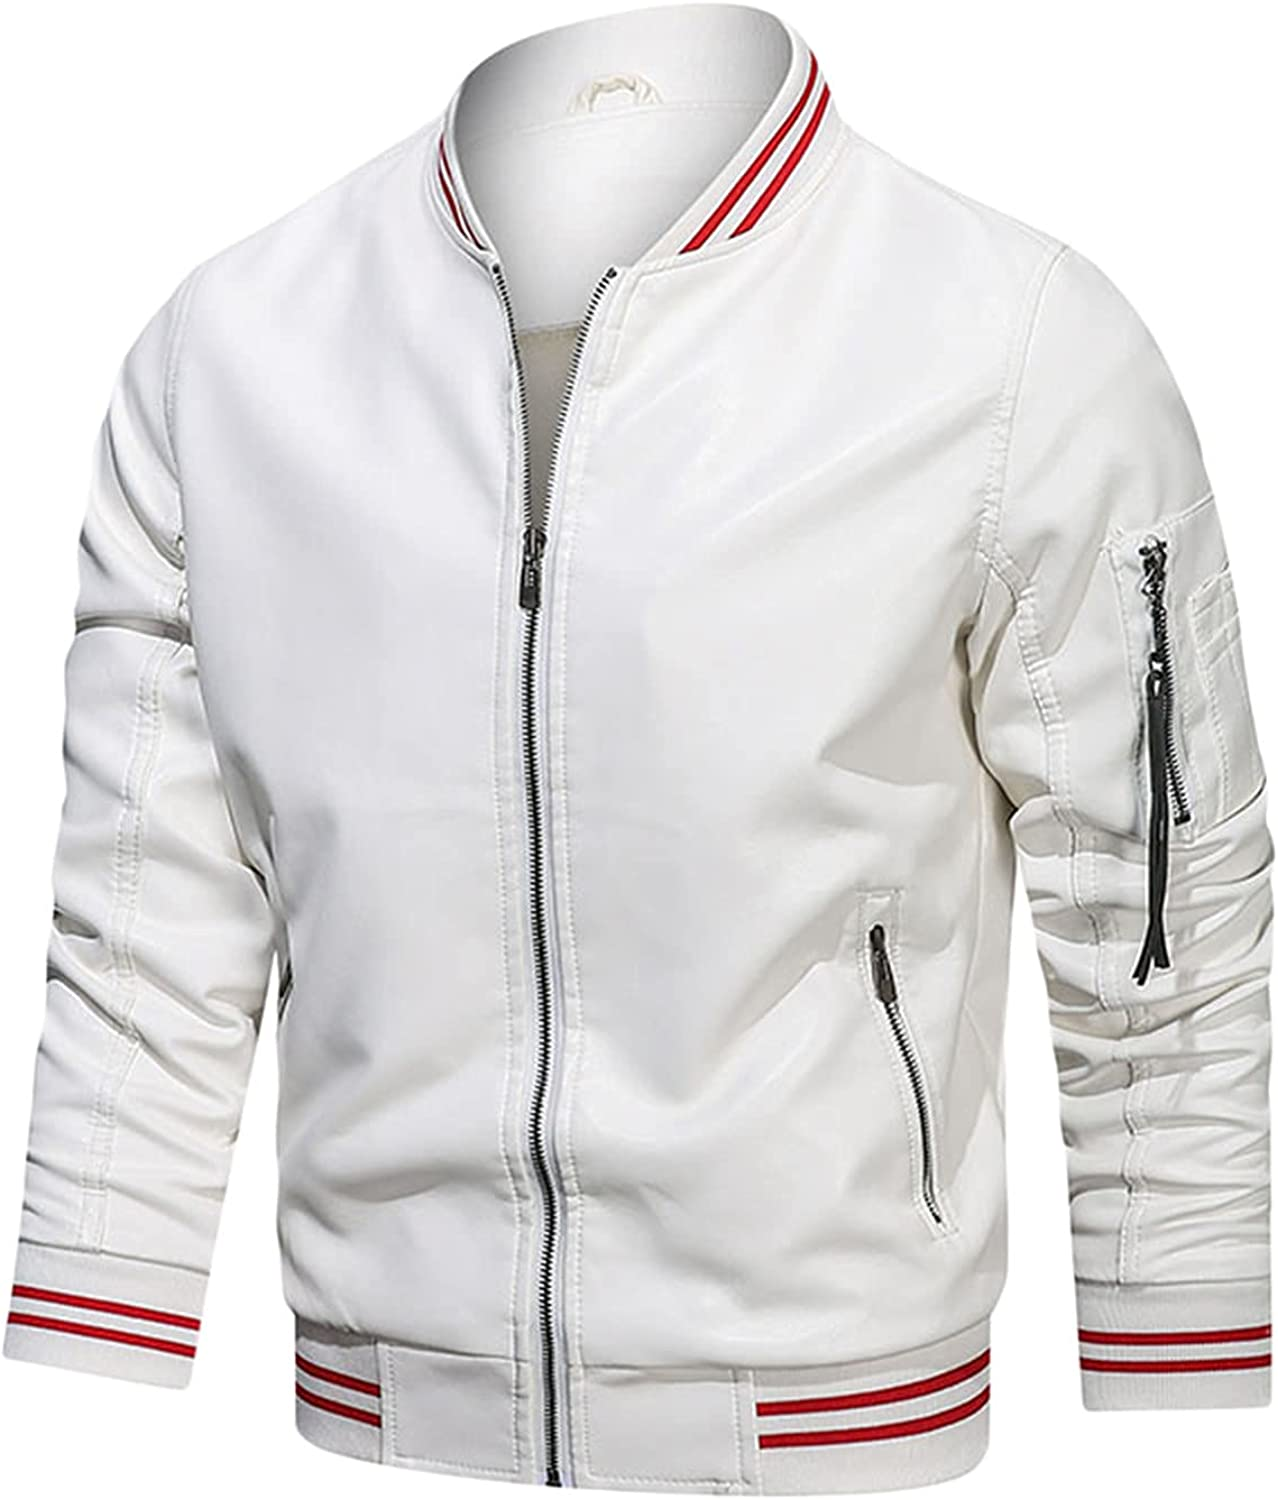 CHENGSE Men's Warm PU Faux Bomber Jack Leather High quality new Zip-Up SEAL limited product Motorcycle